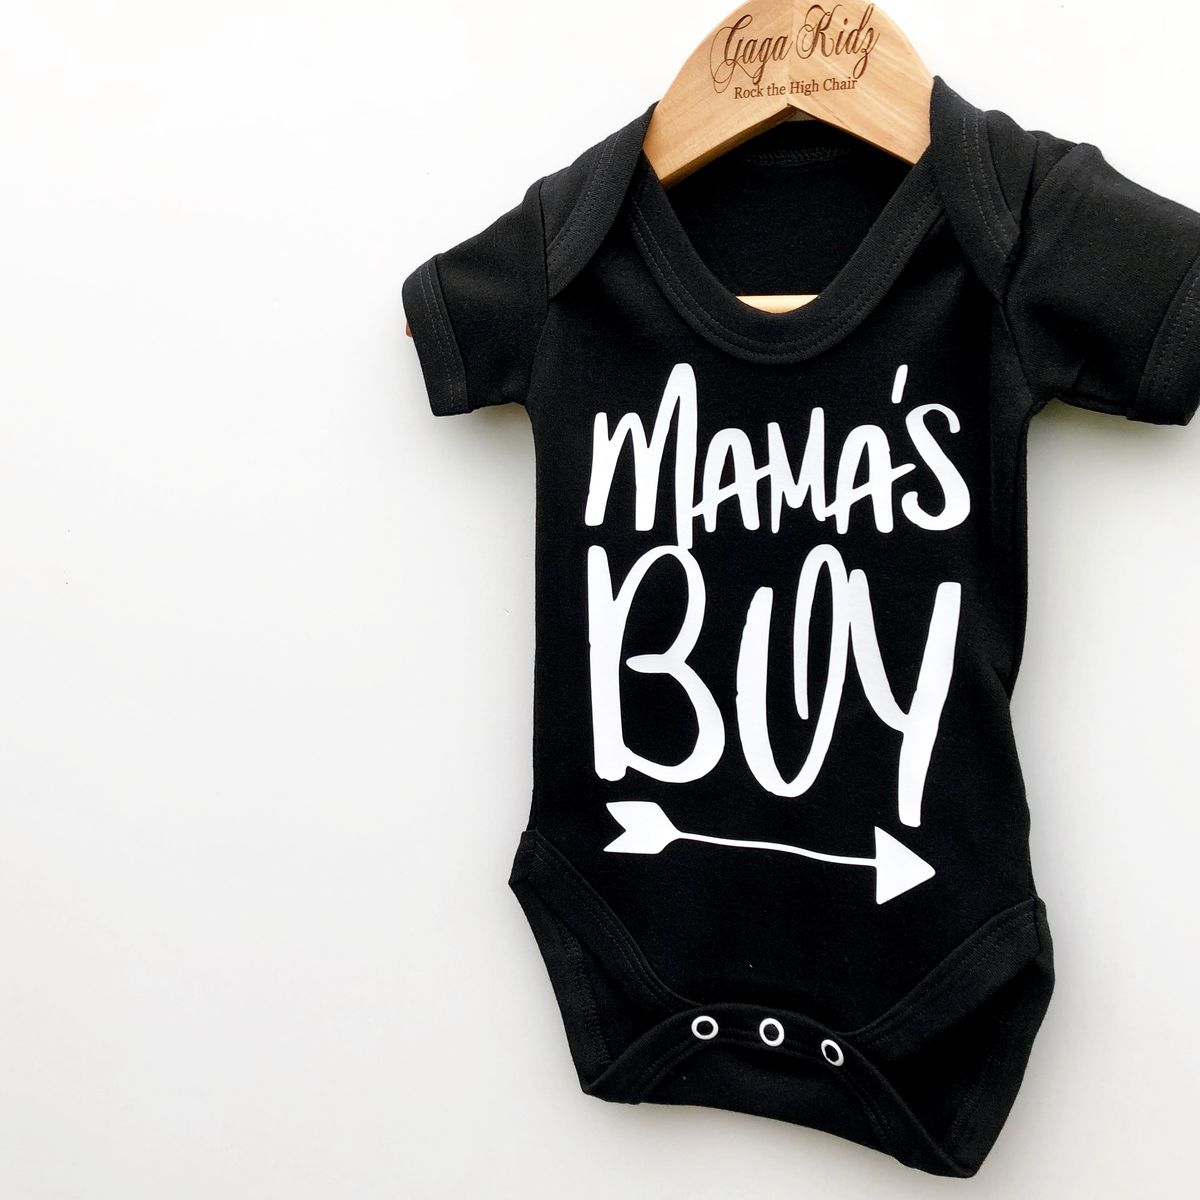 Mama's Boy Black & White Bodysuits (various sizes)  - product images  of